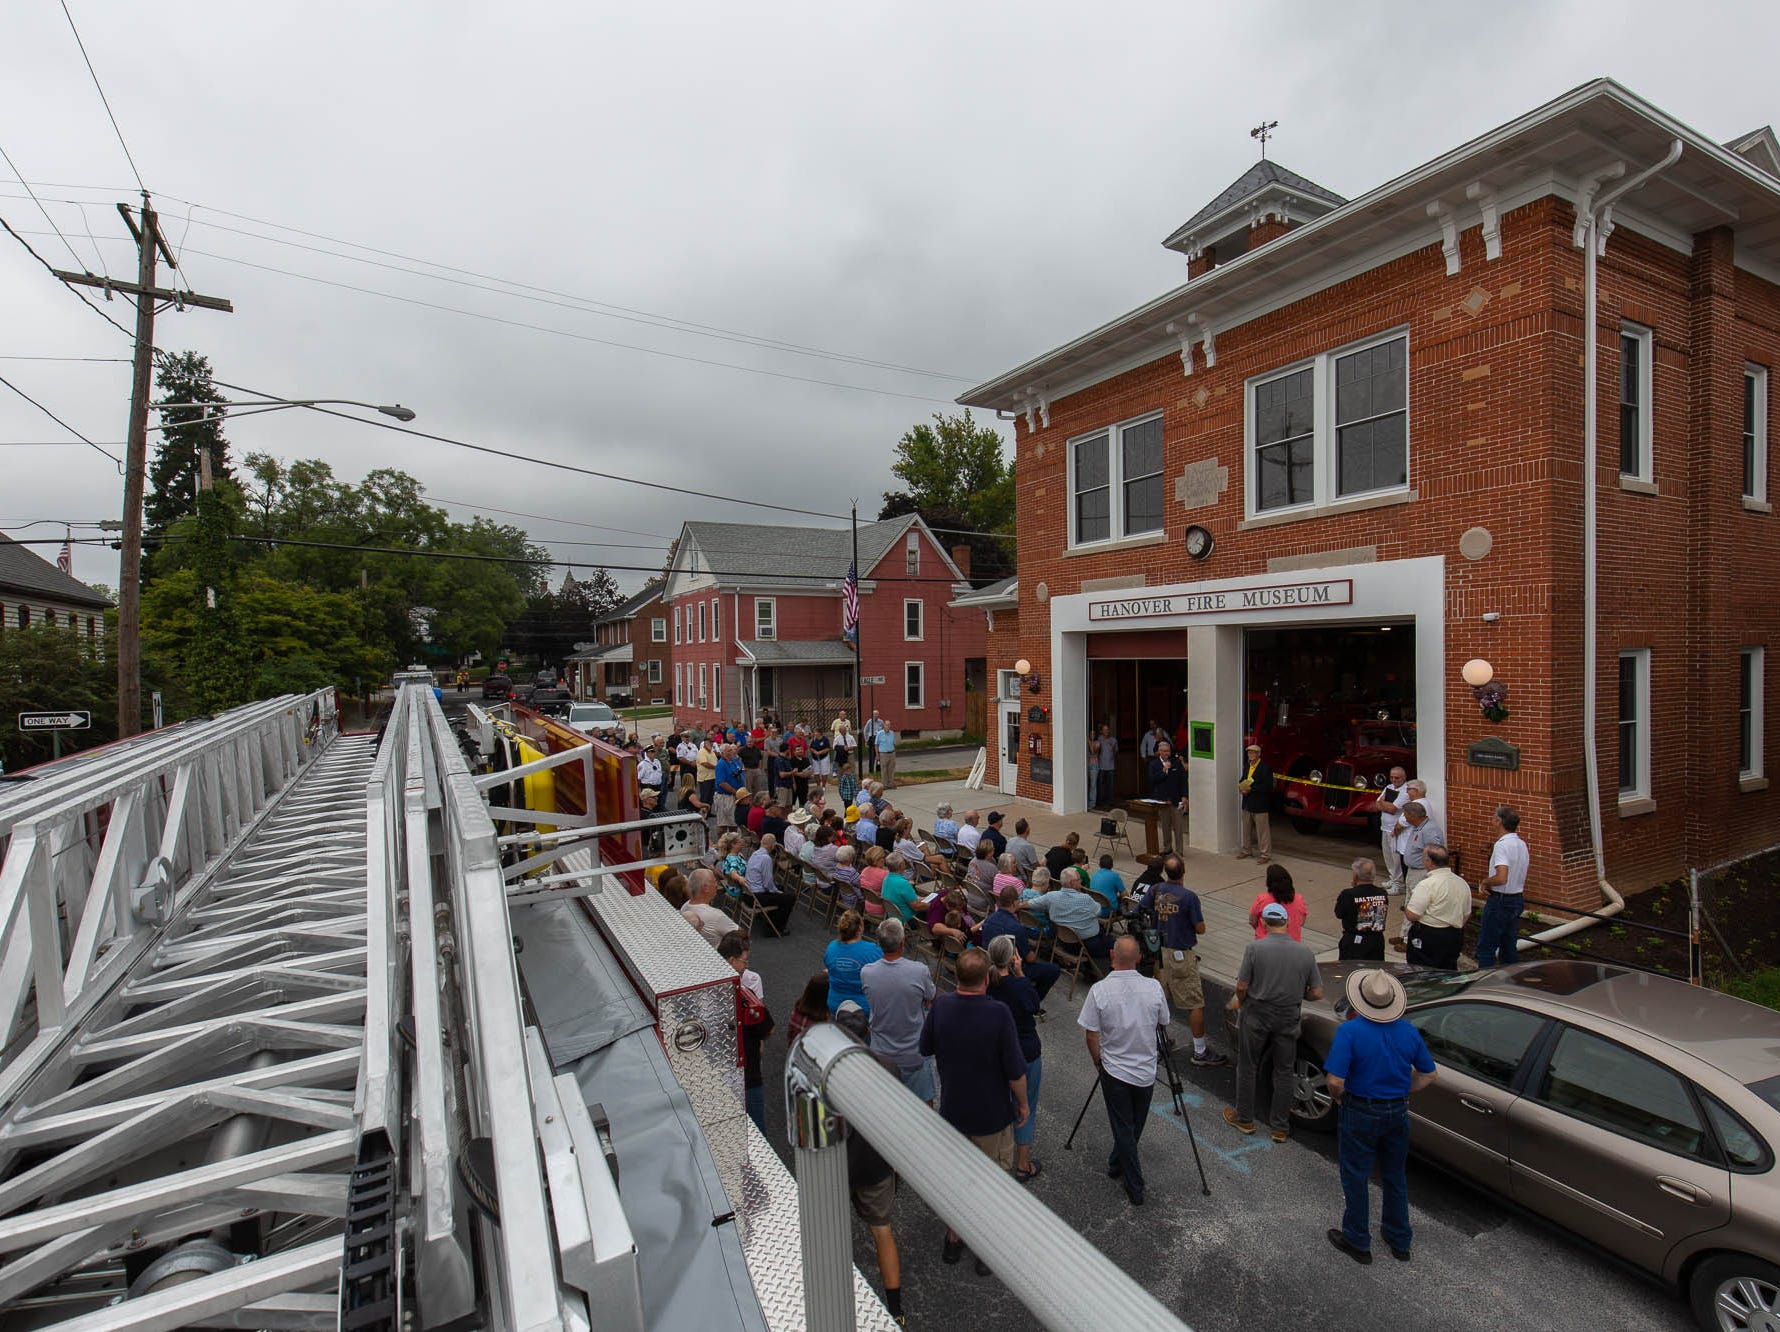 A crowd gathers on Hanover Street during the dedication ceremony for the new Greater Hanover Area Fire Museum, Saturday, Sept. 1, 2018, in Hanover.